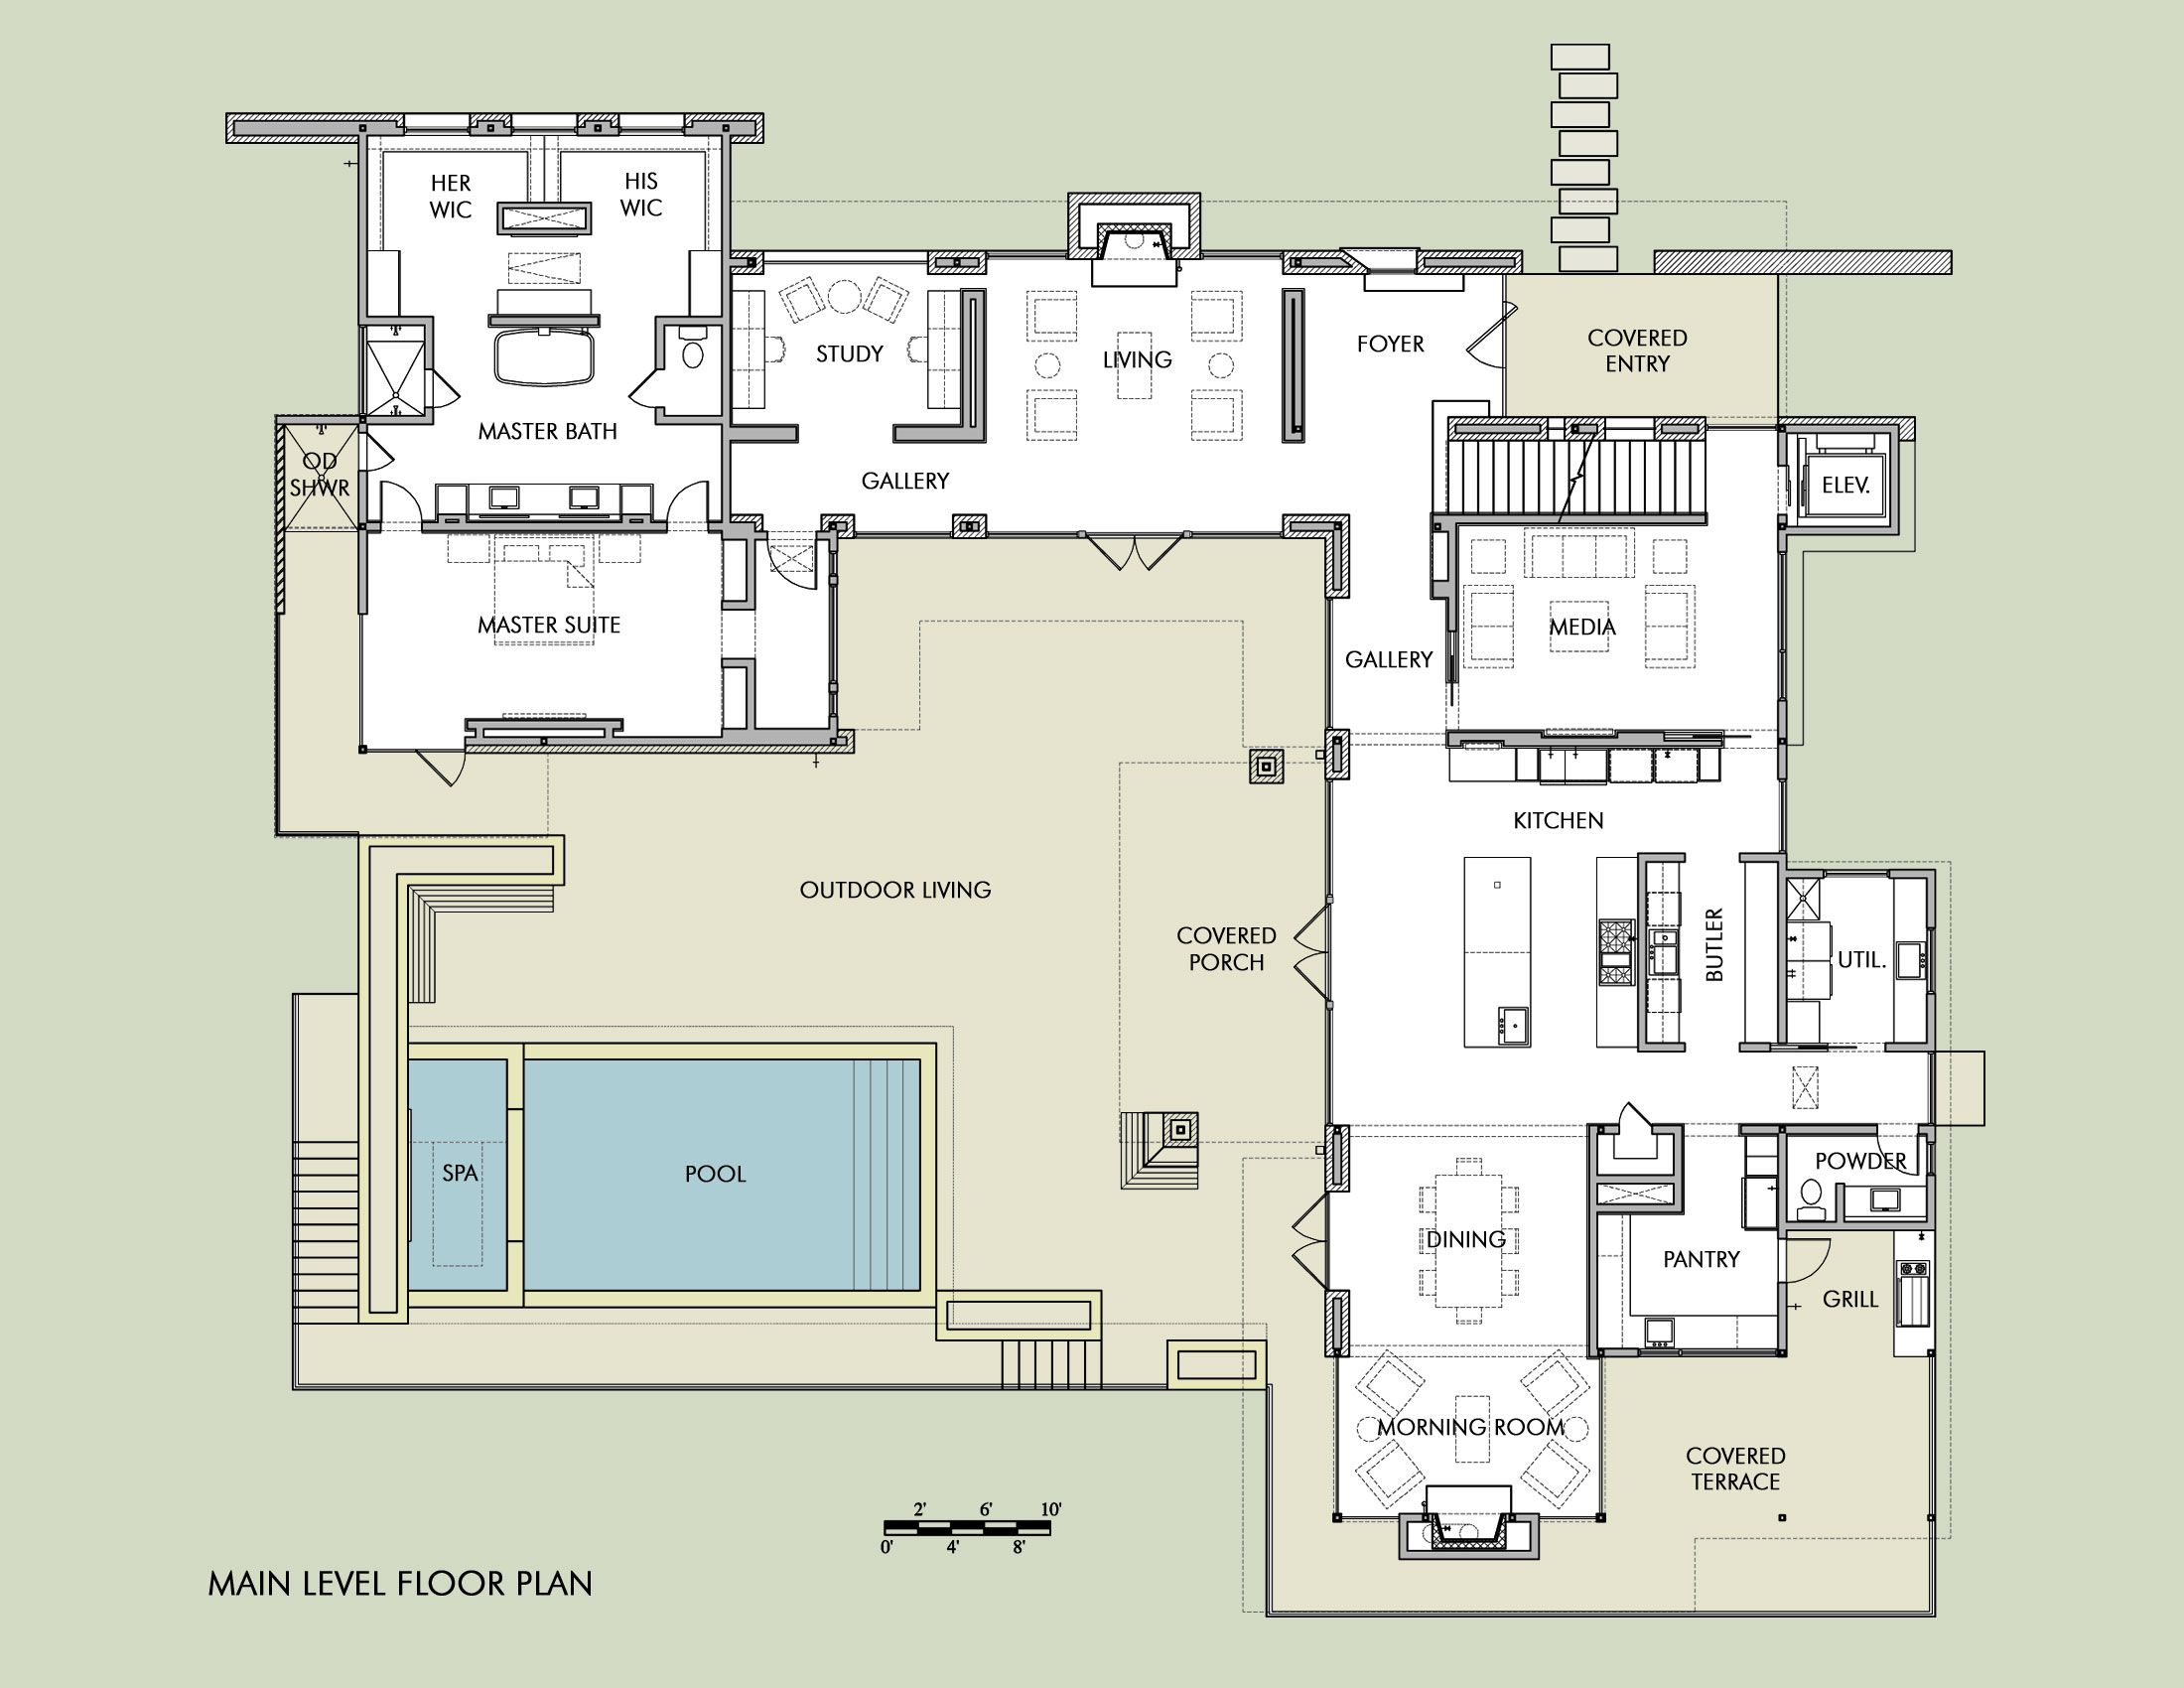 Hill Country Residence By Cornerstone Architects 73 Homedsgn Architectural Floor Plans How To Plan Floor Plans